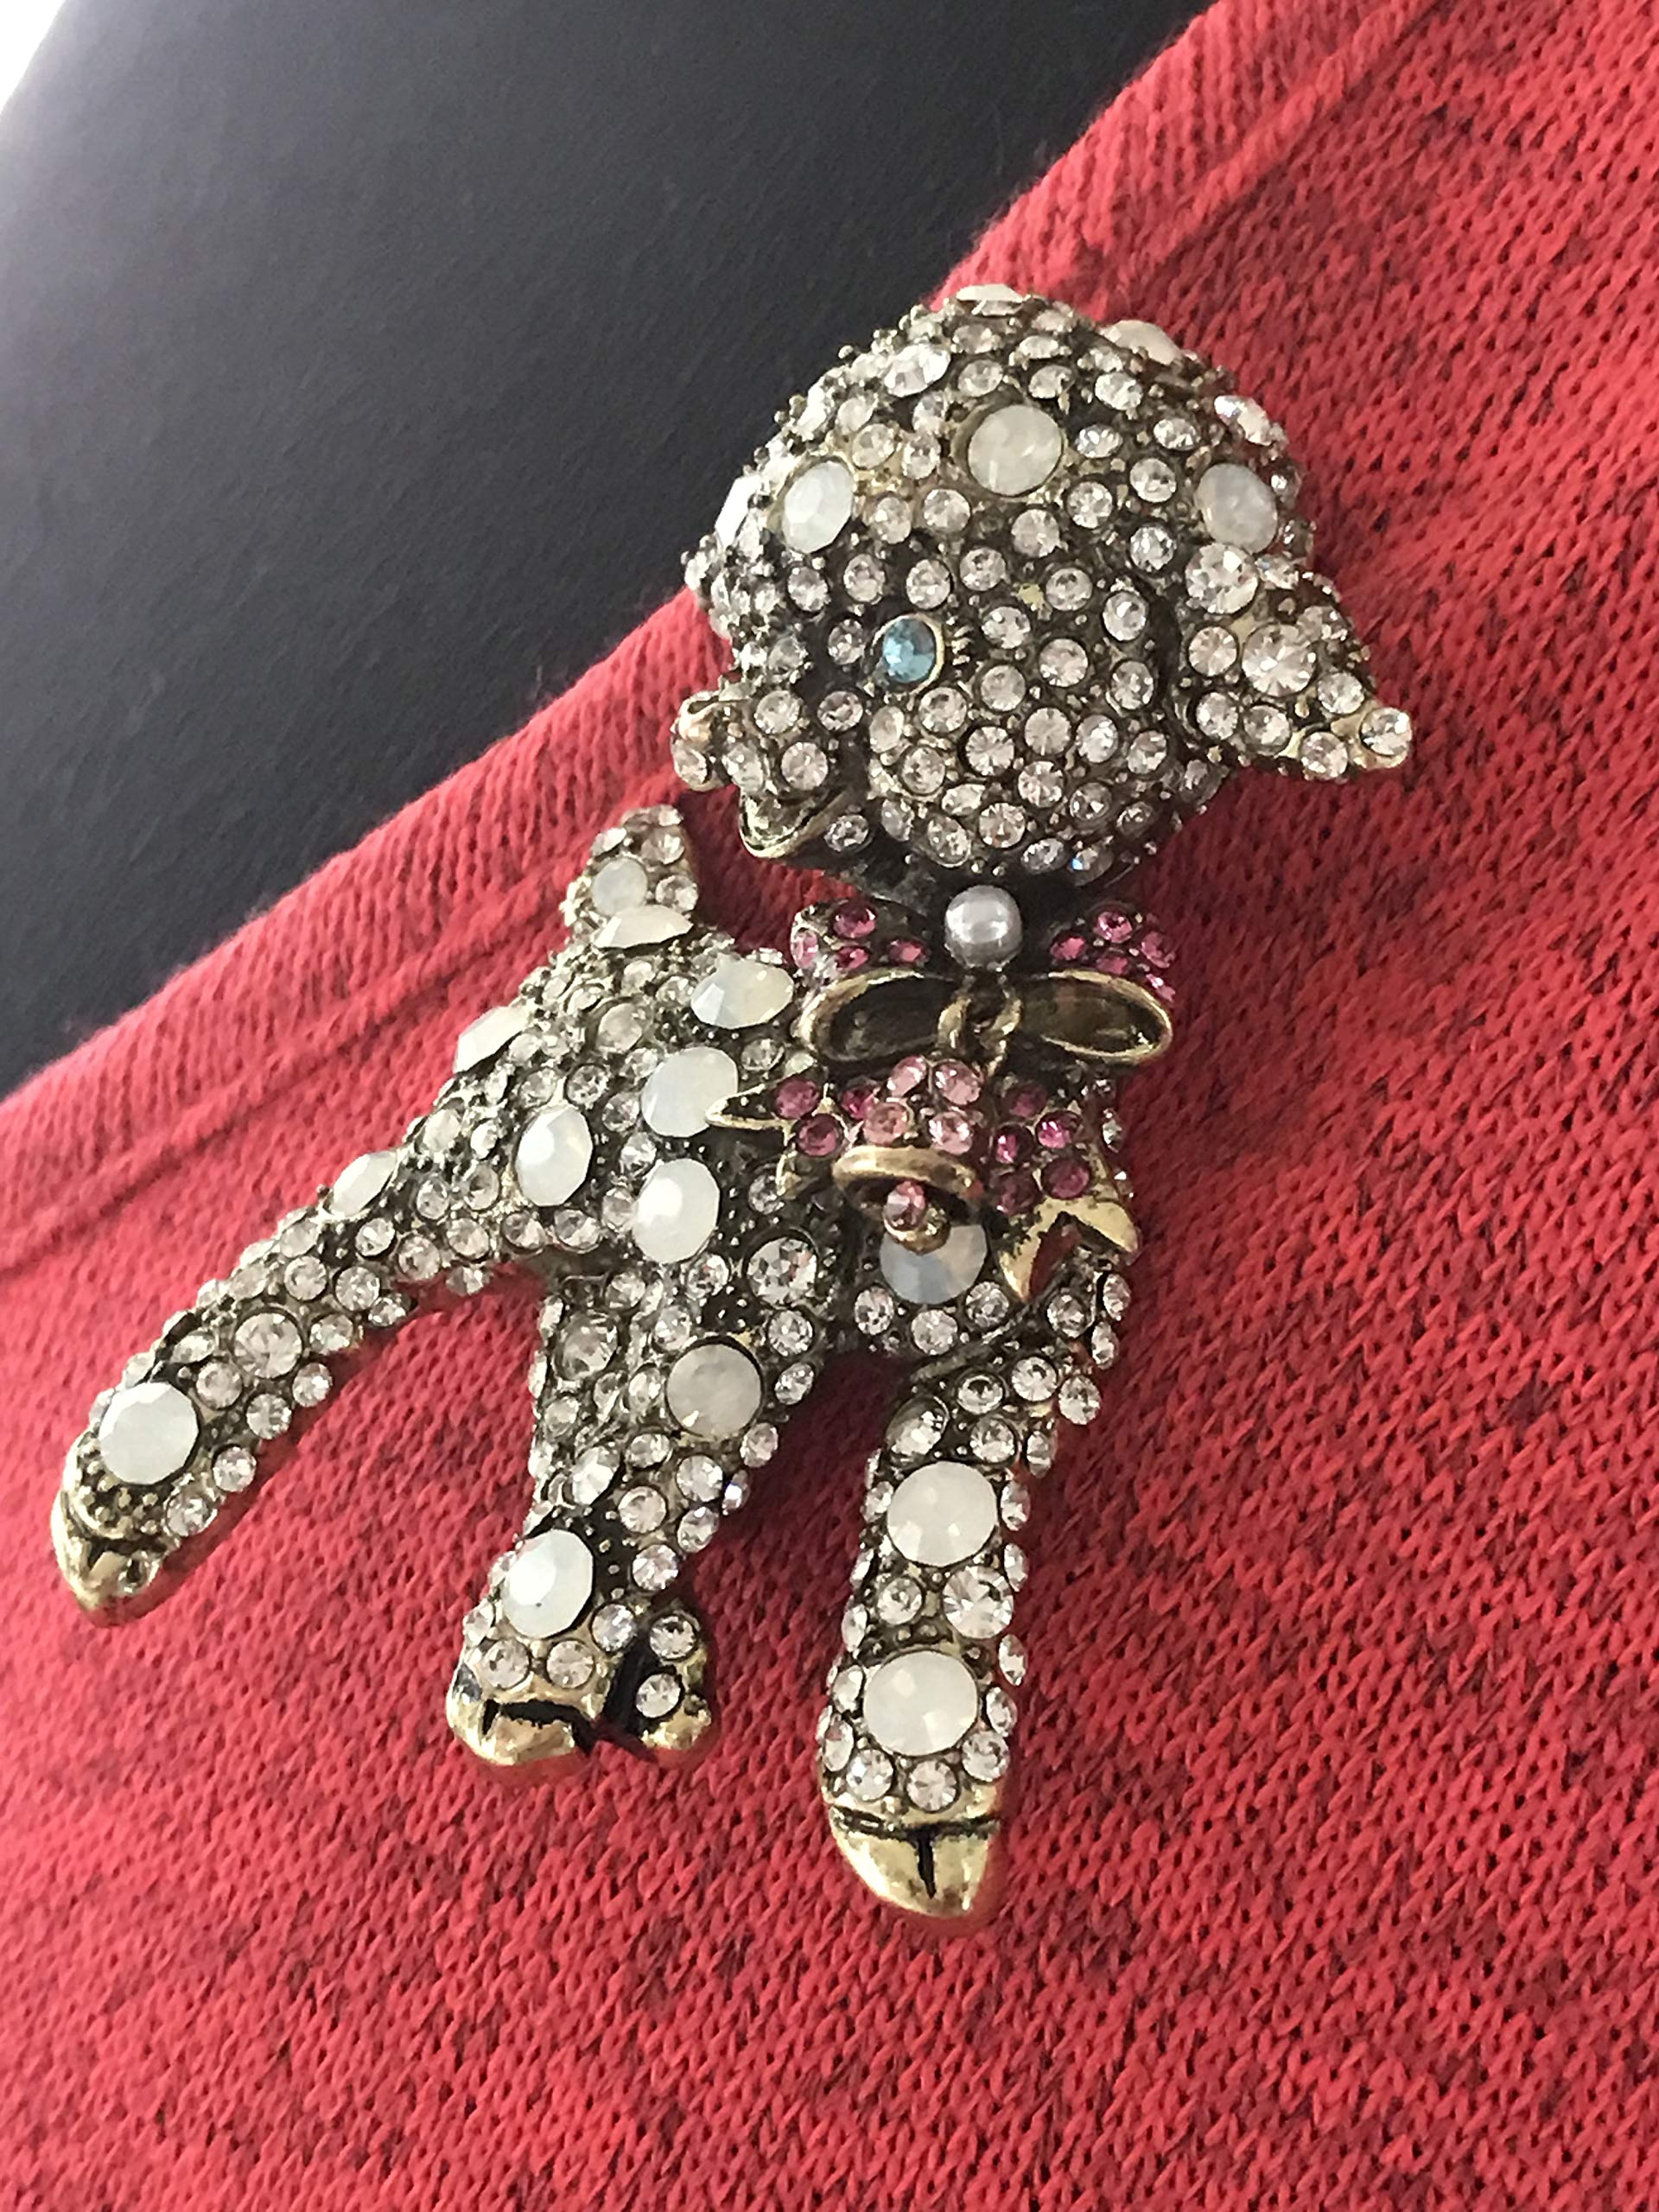 Heidi Daus Mairzy Doats Pavé Crystal Cutest Little Thing You'll See, Grab IT!!! by Heidi Daus (Image #3)